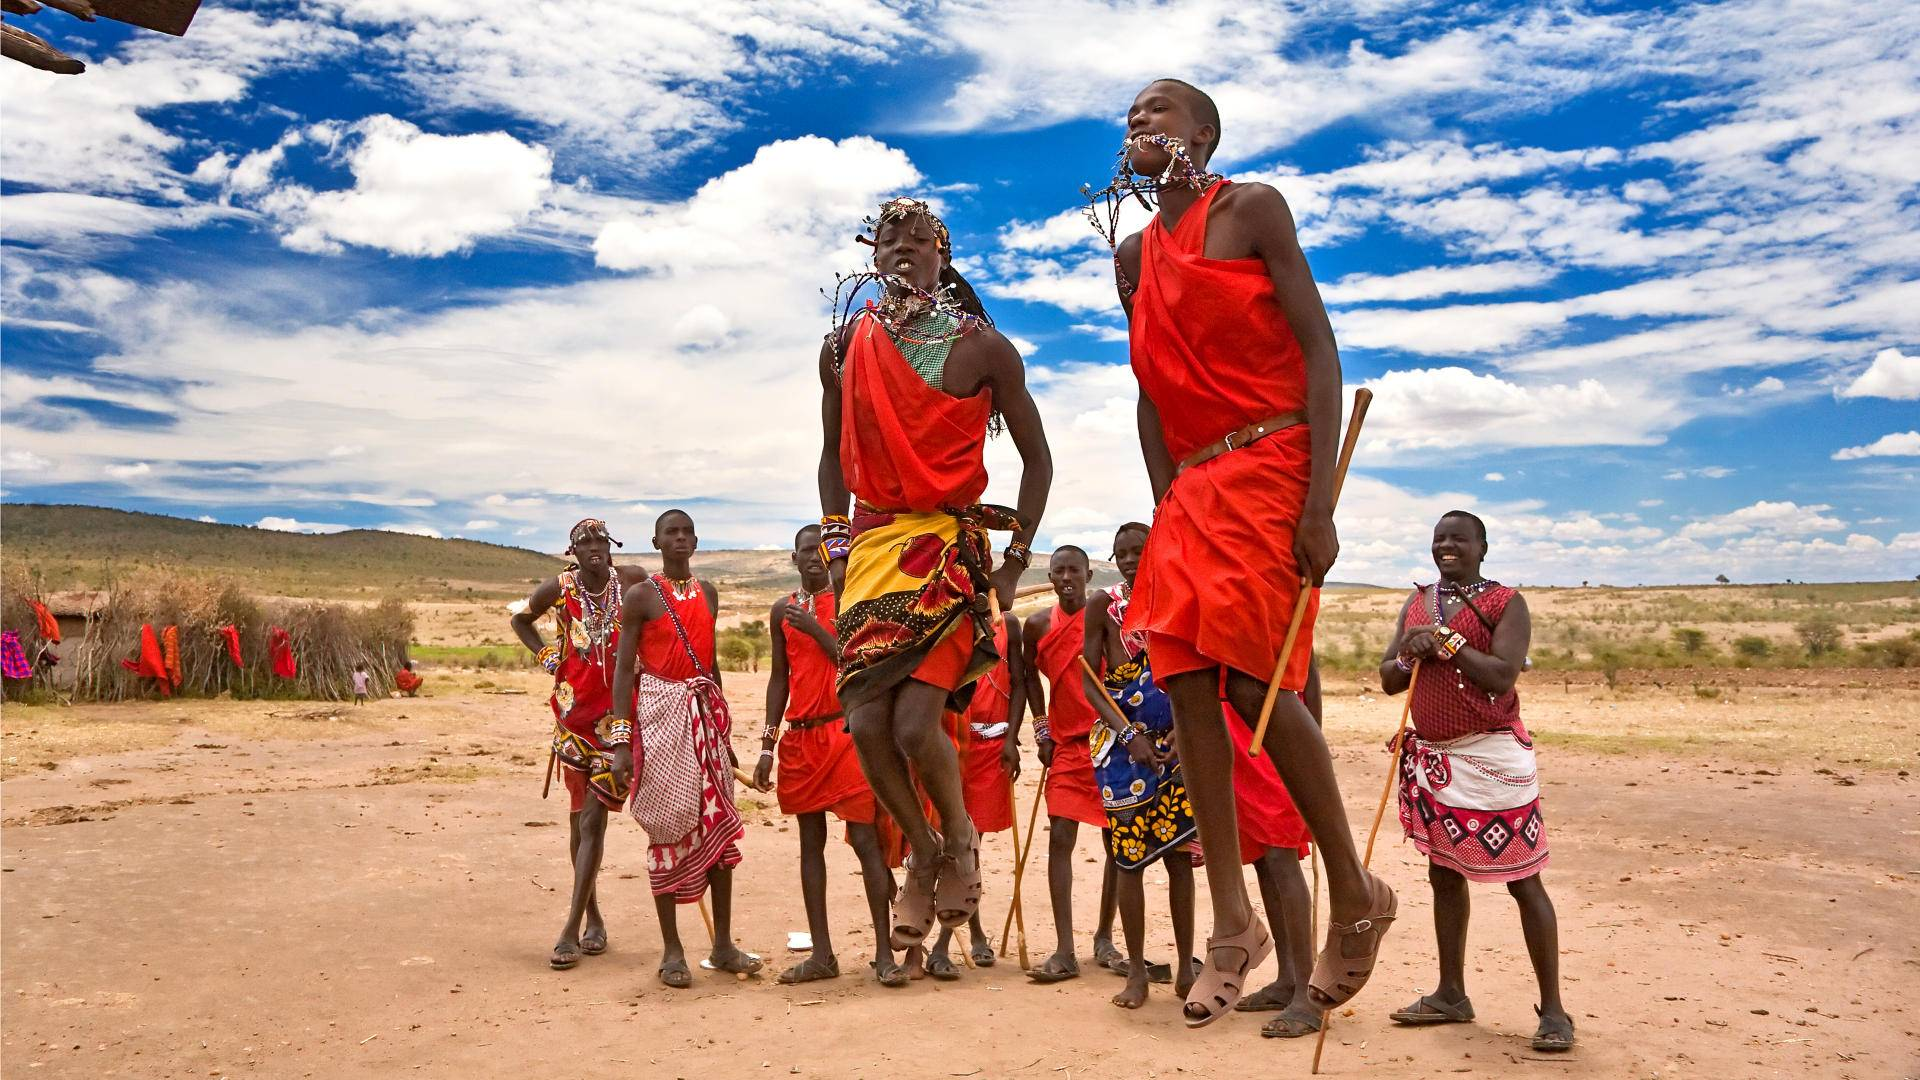 Kenya Travel, Tours, Gap Year & Volunteering